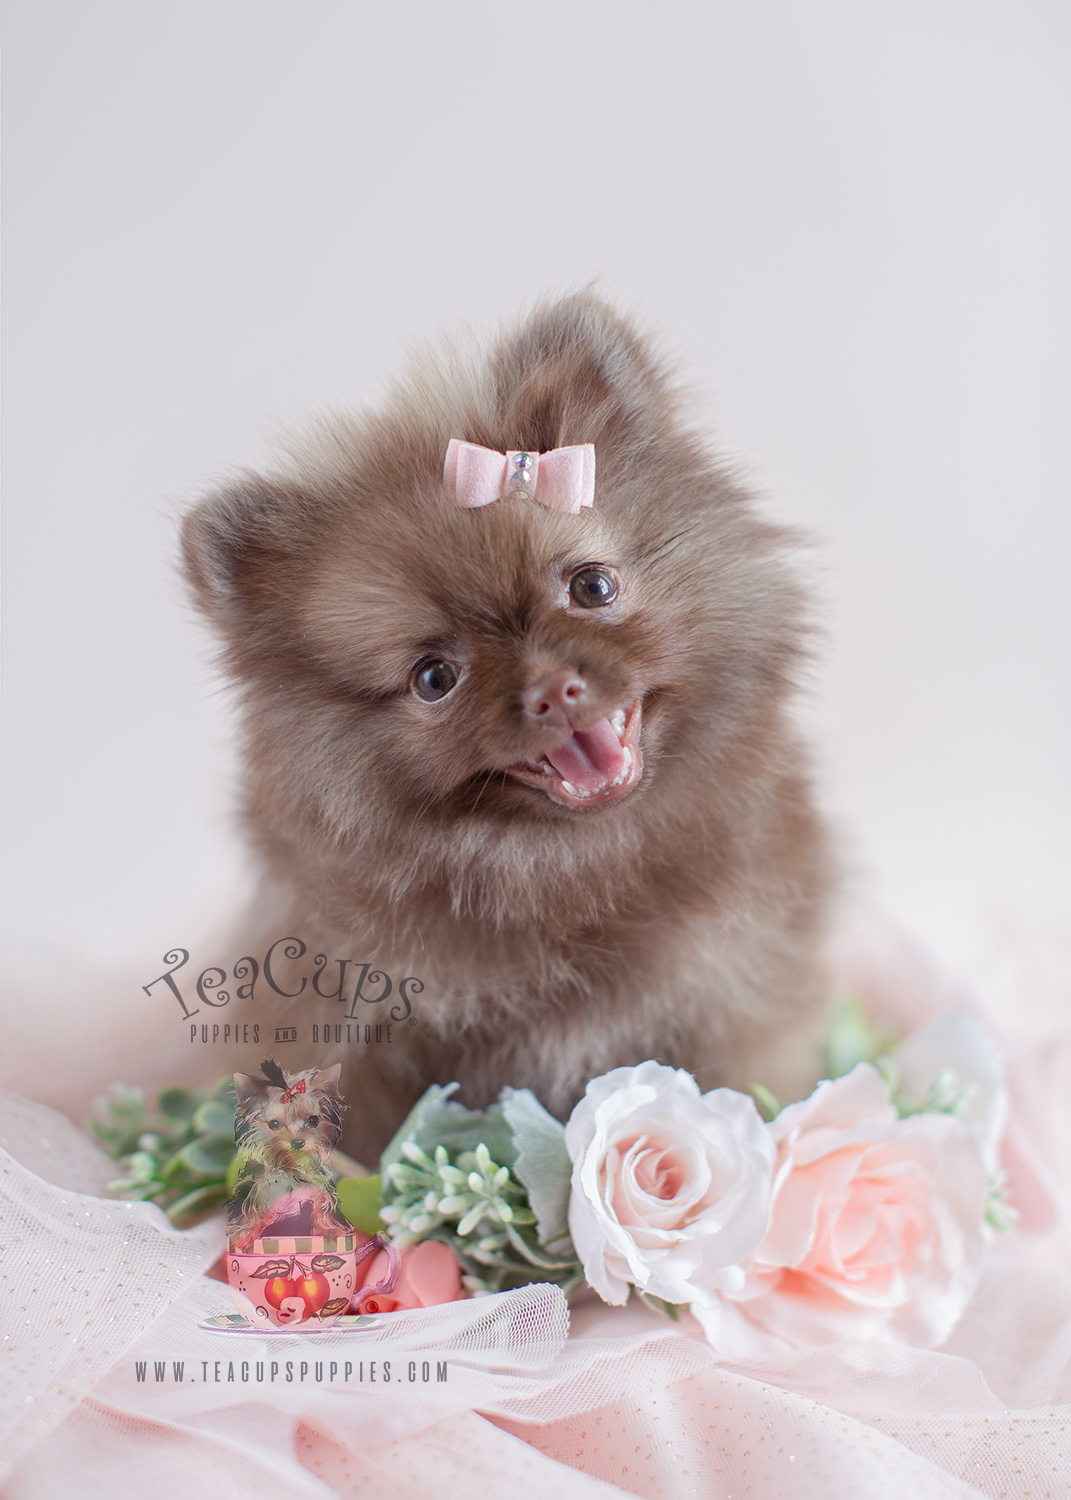 Teacup Pomeranians and Toy Pomeranian Puppies